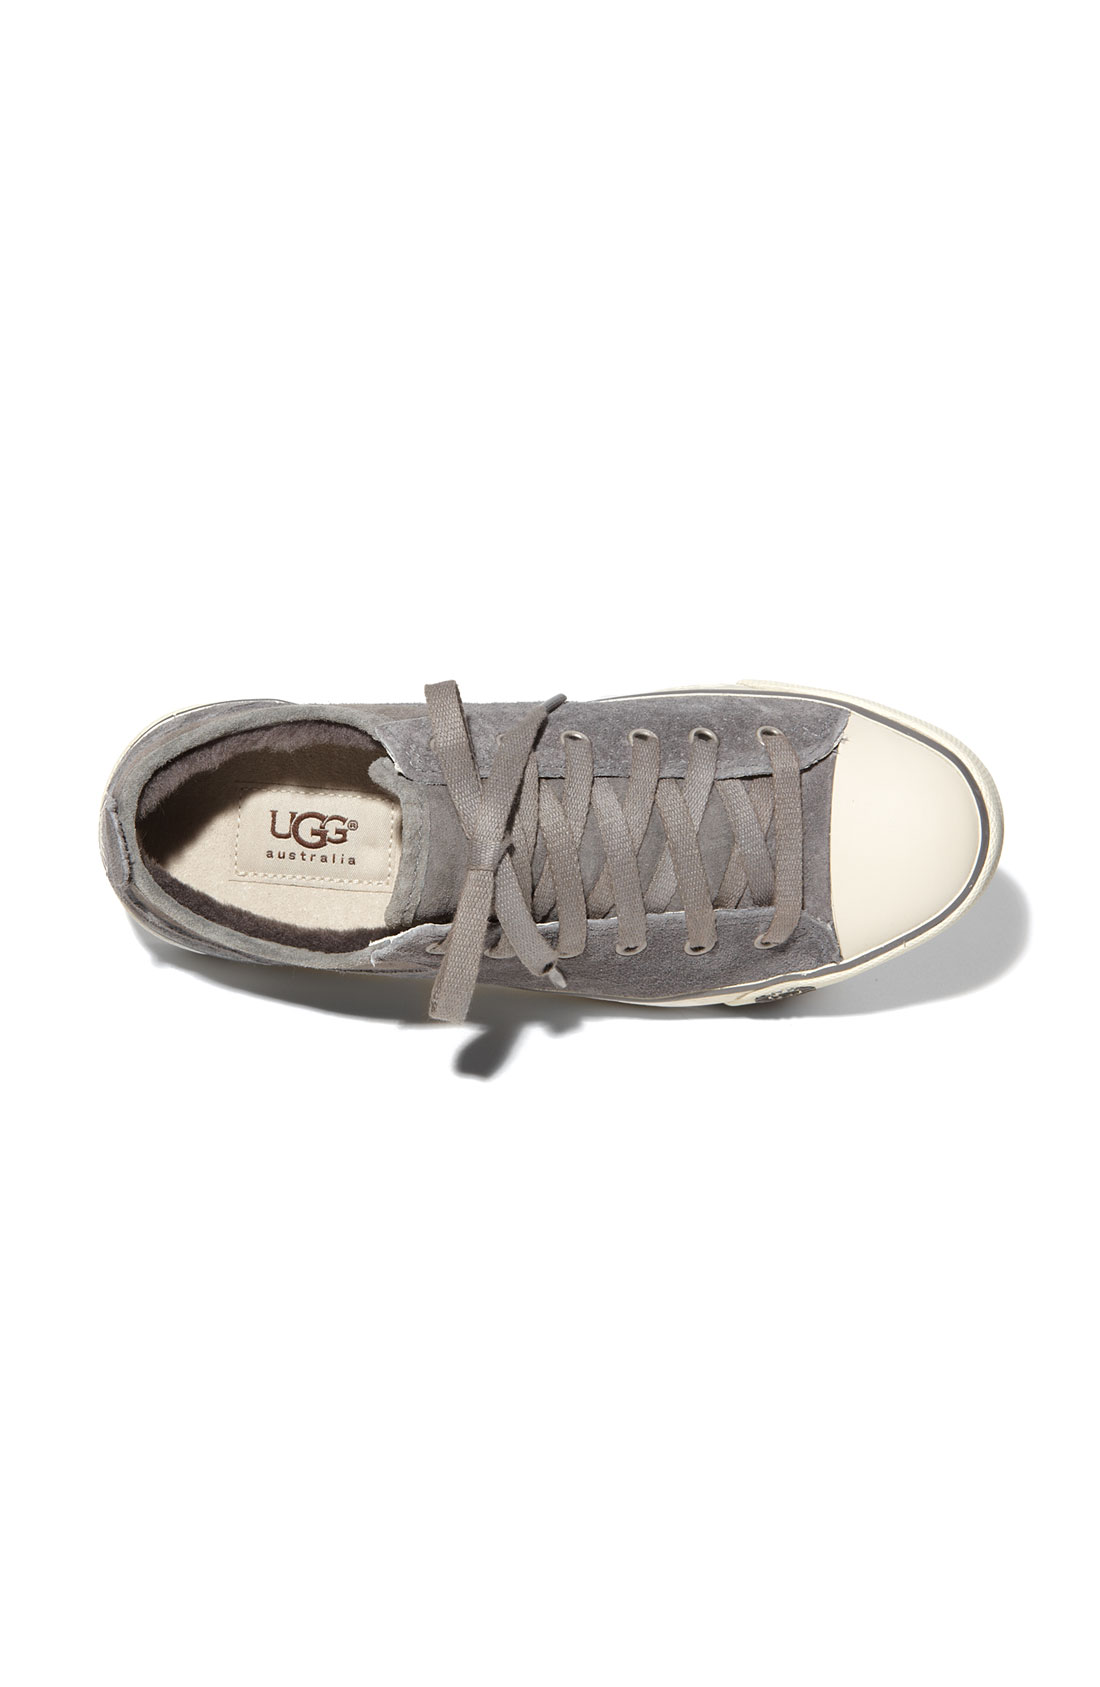 334eca16fb2 Ugg Womens Evera Trainers Pewter - cheap watches mgc-gas.com